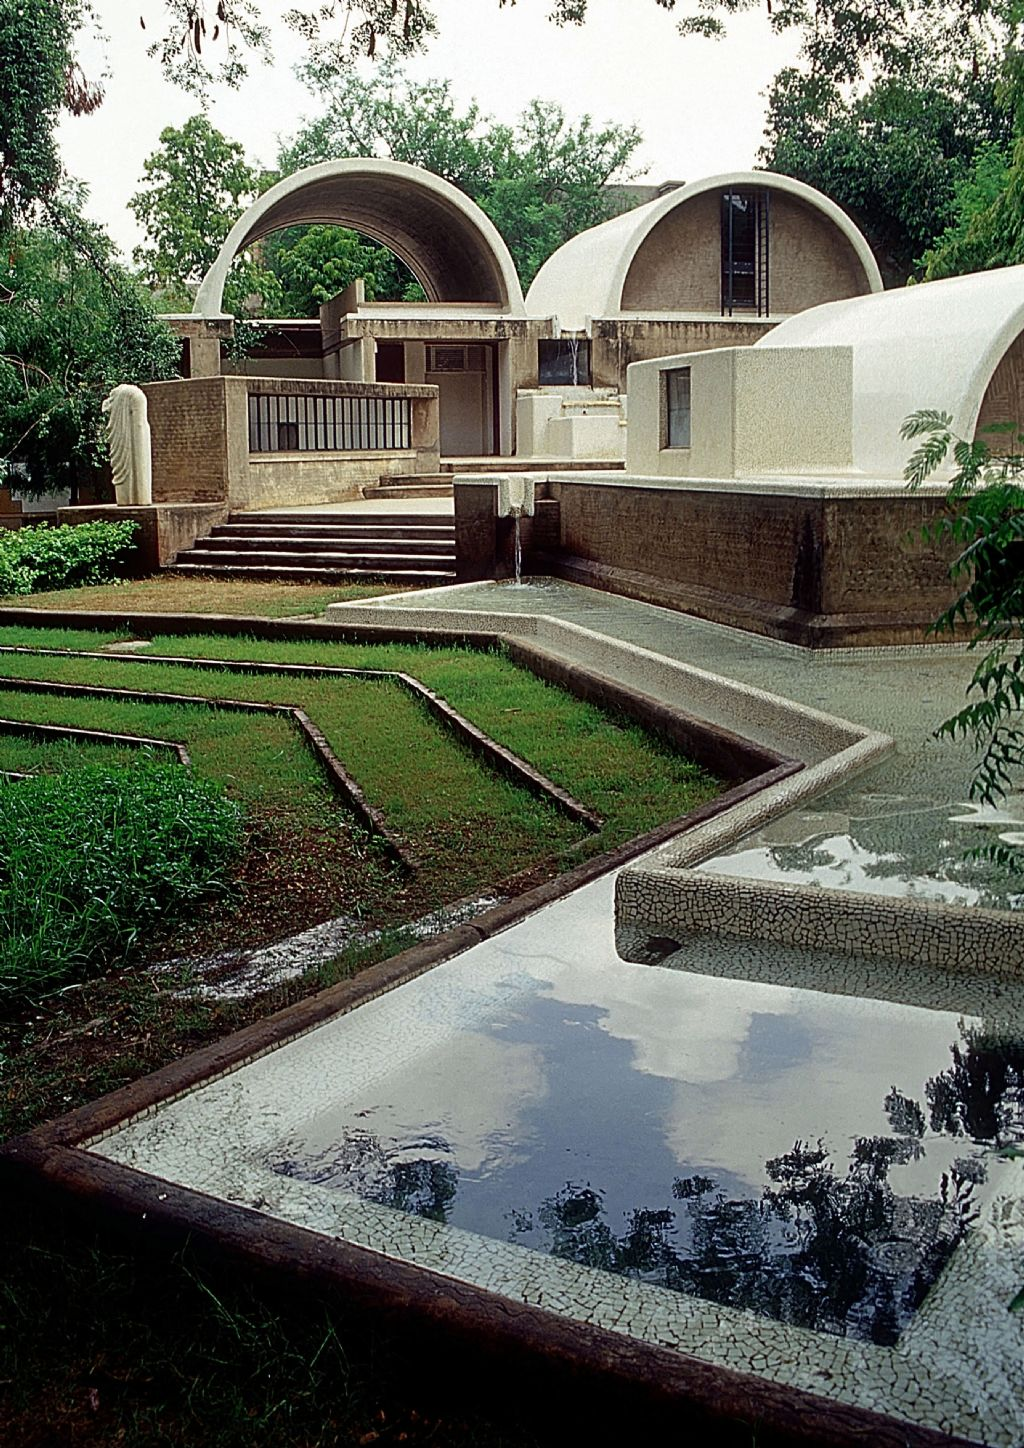 Sangath Architect's Studio 1980 Ahmedabad, India